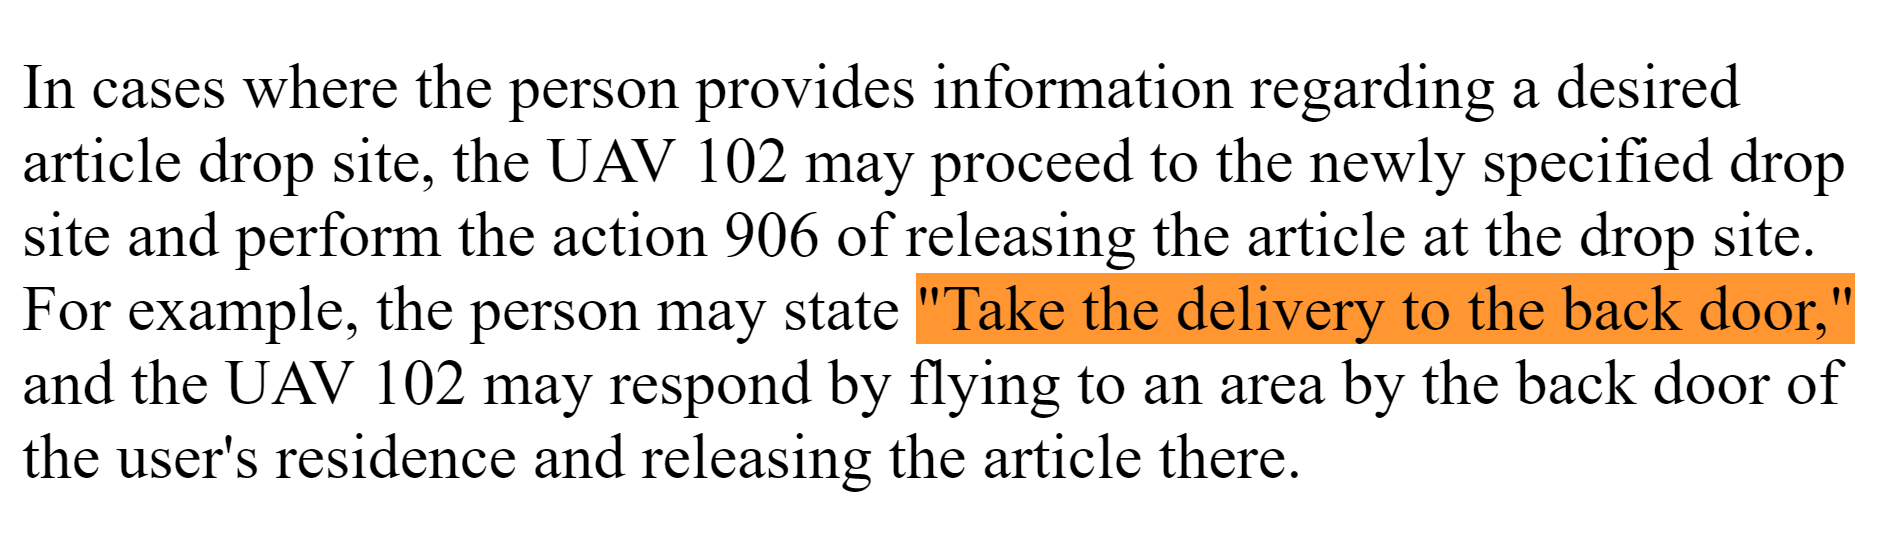 Airborne Alexa? Amazon Patents Reveal A Delivery Drone That